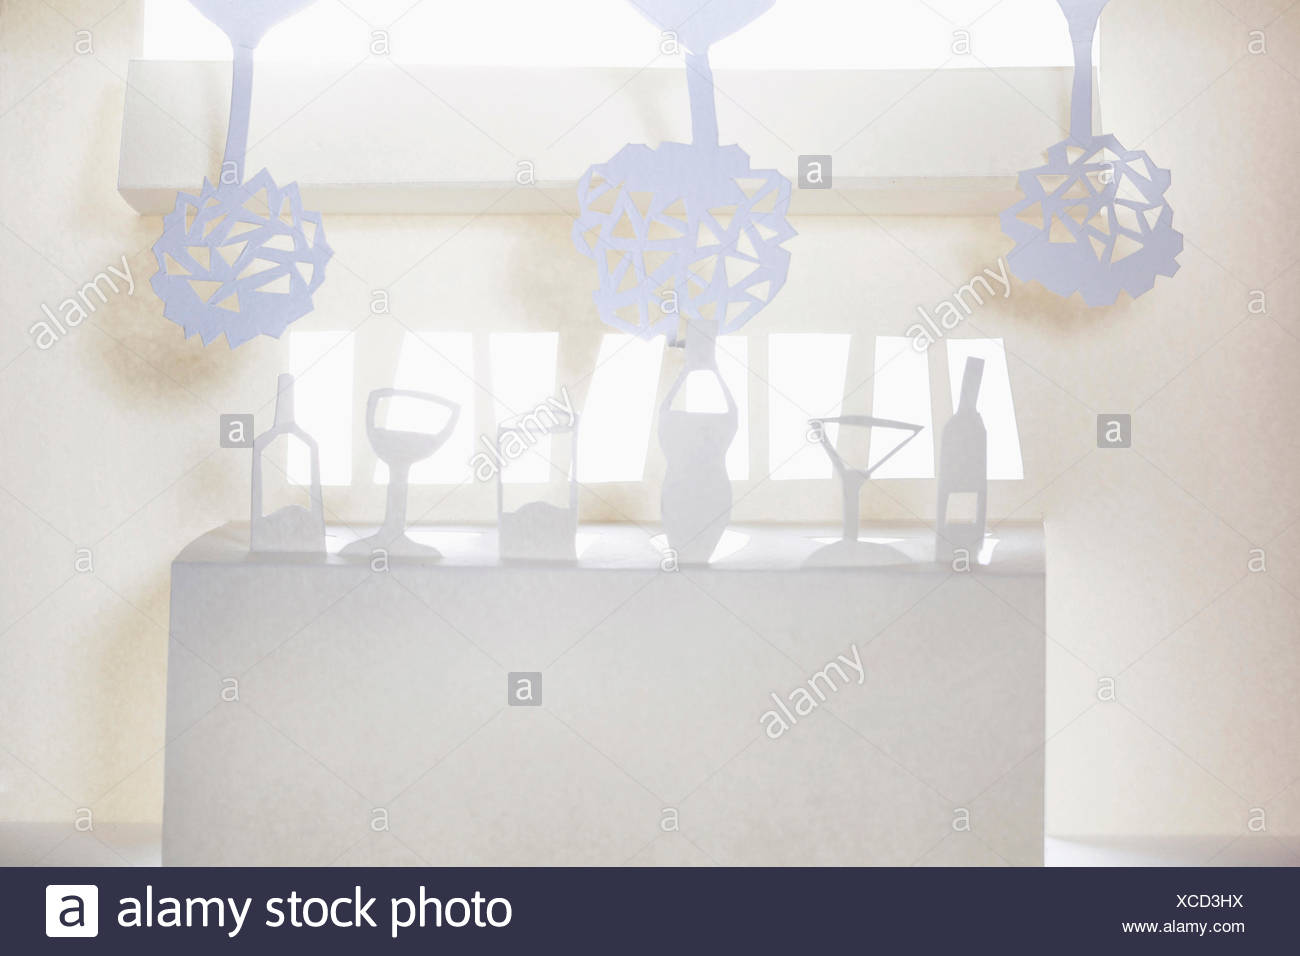 Cut out chandelier stock photos cut out chandelier stock images bright store stock image arubaitofo Images